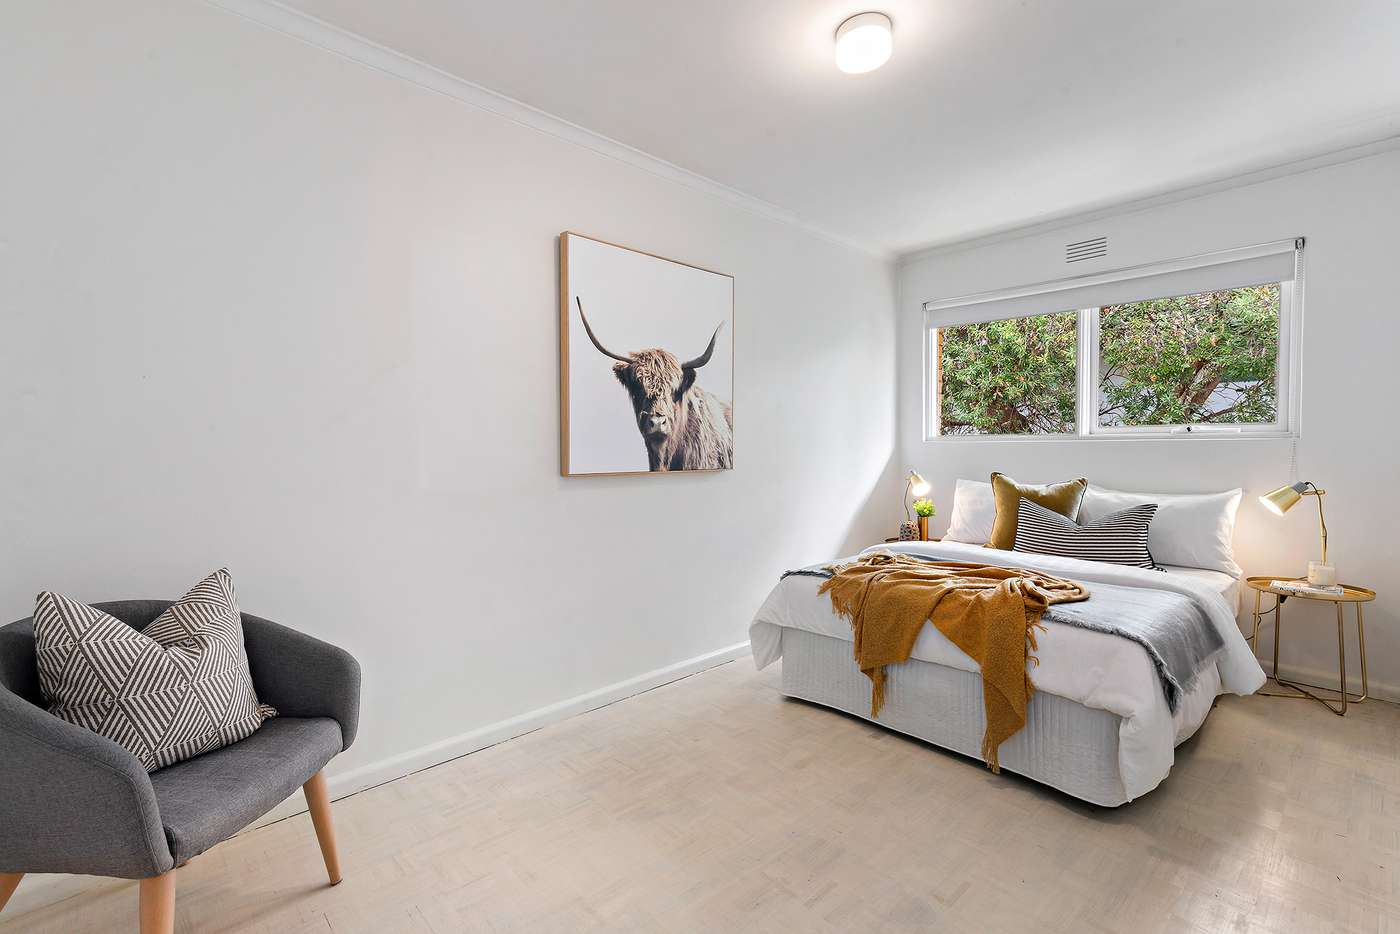 Sixth view of Homely apartment listing, 13/45 Abbott Street, Sandringham VIC 3191